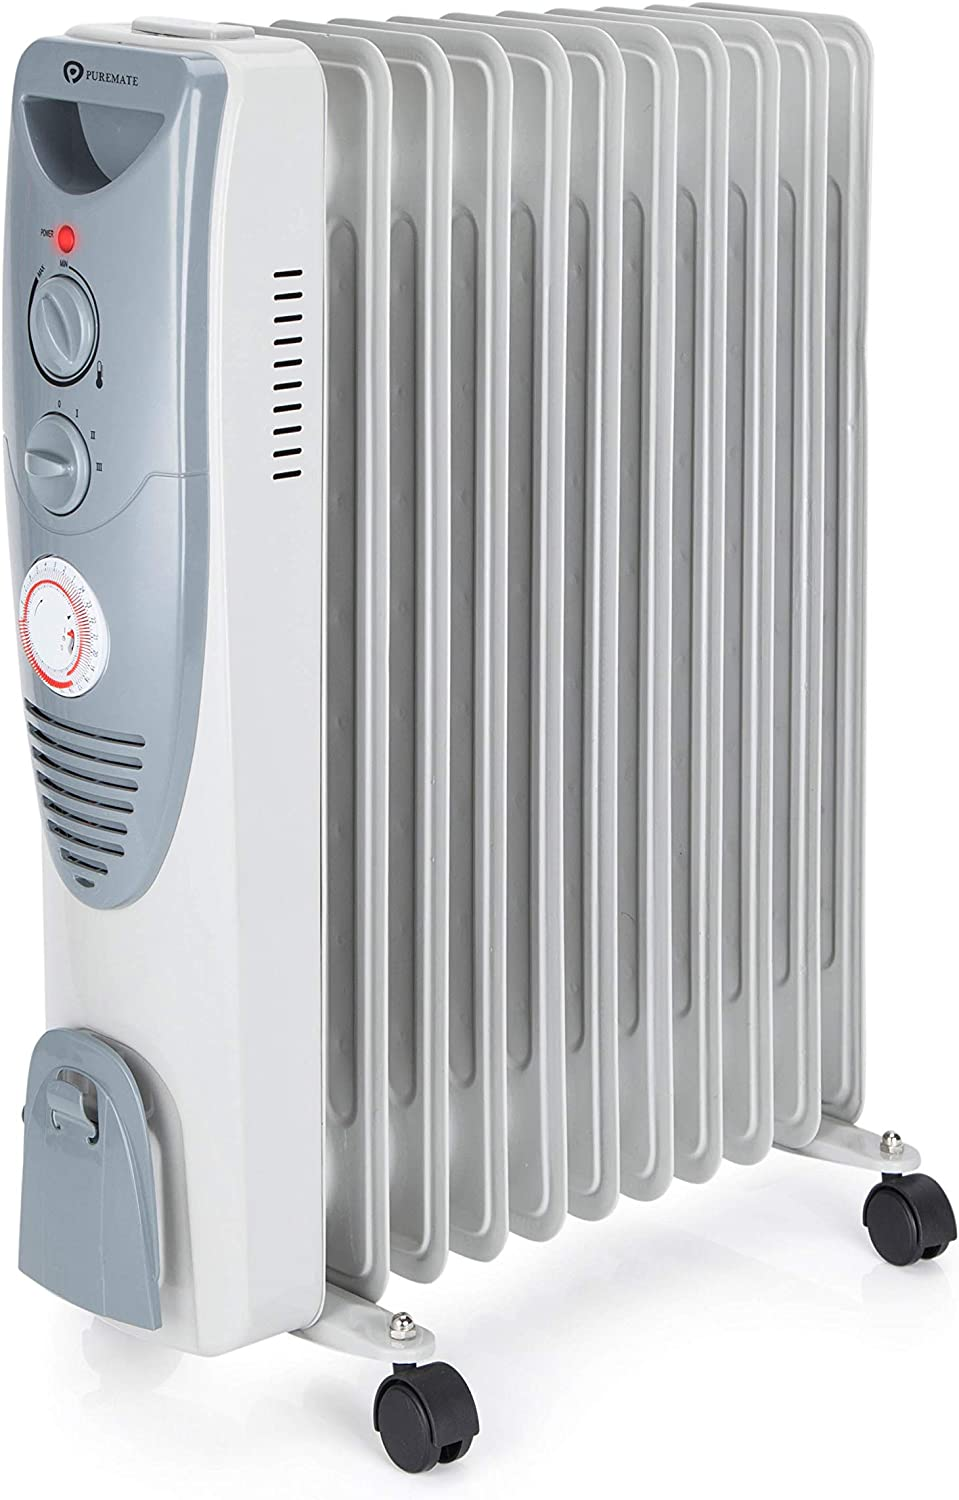 PureMate 2500W Oil Filled Radiator 11 Fin – Portable Electric Heater – 3 Power Settings, Adjustable Temperature/Thermostat, Thermal Safety Cut off & 24 Hour Timer